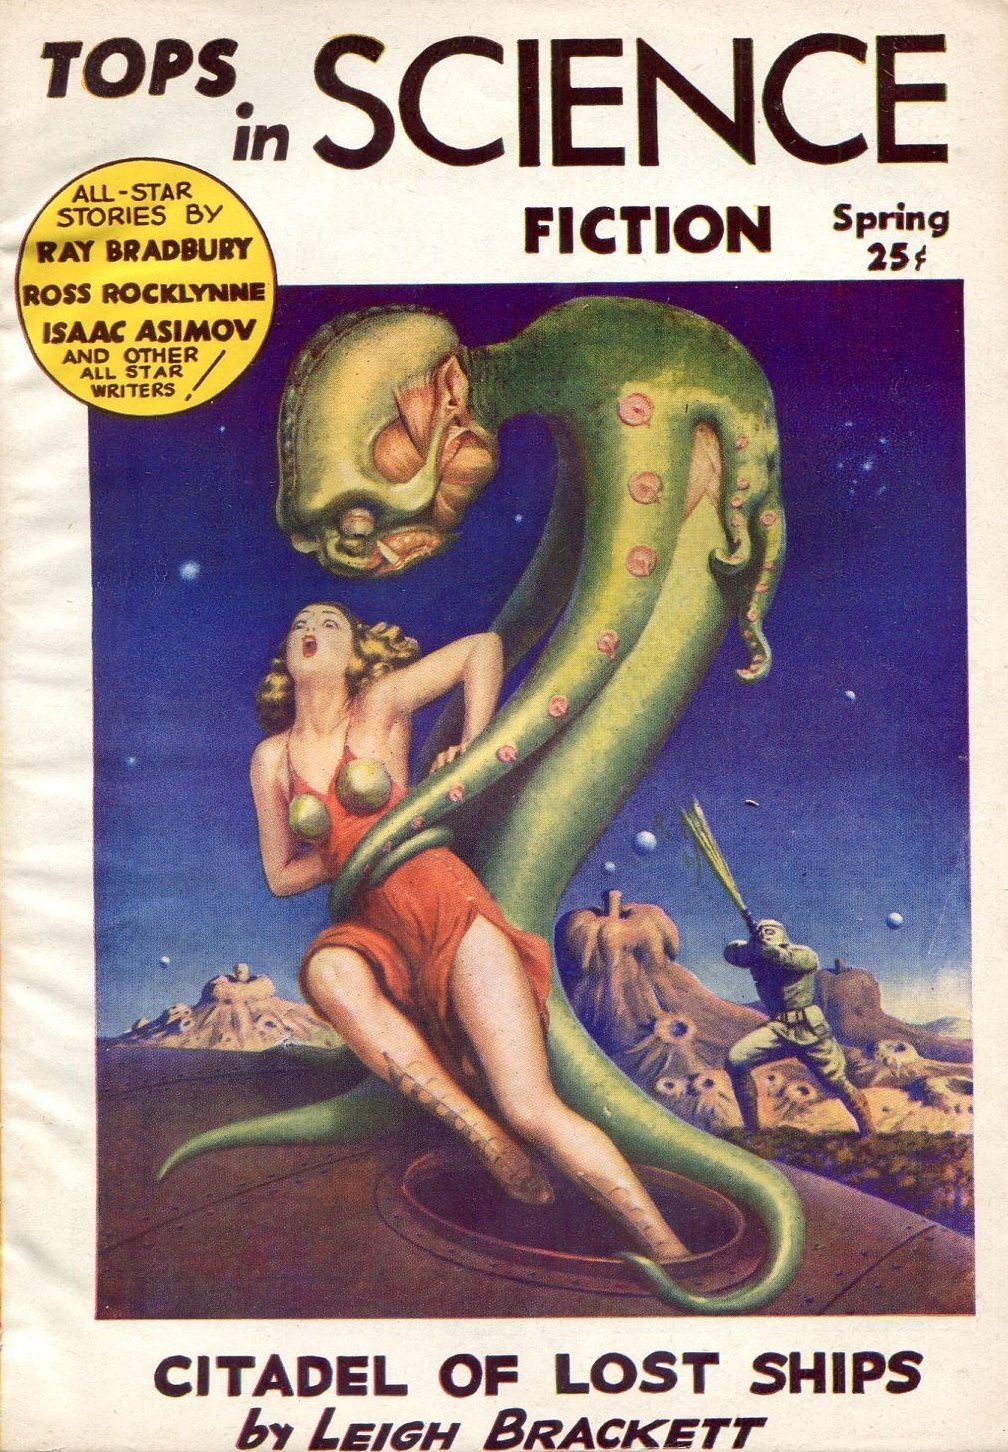 Tops In Science Fiction No. 1 Spring 1953